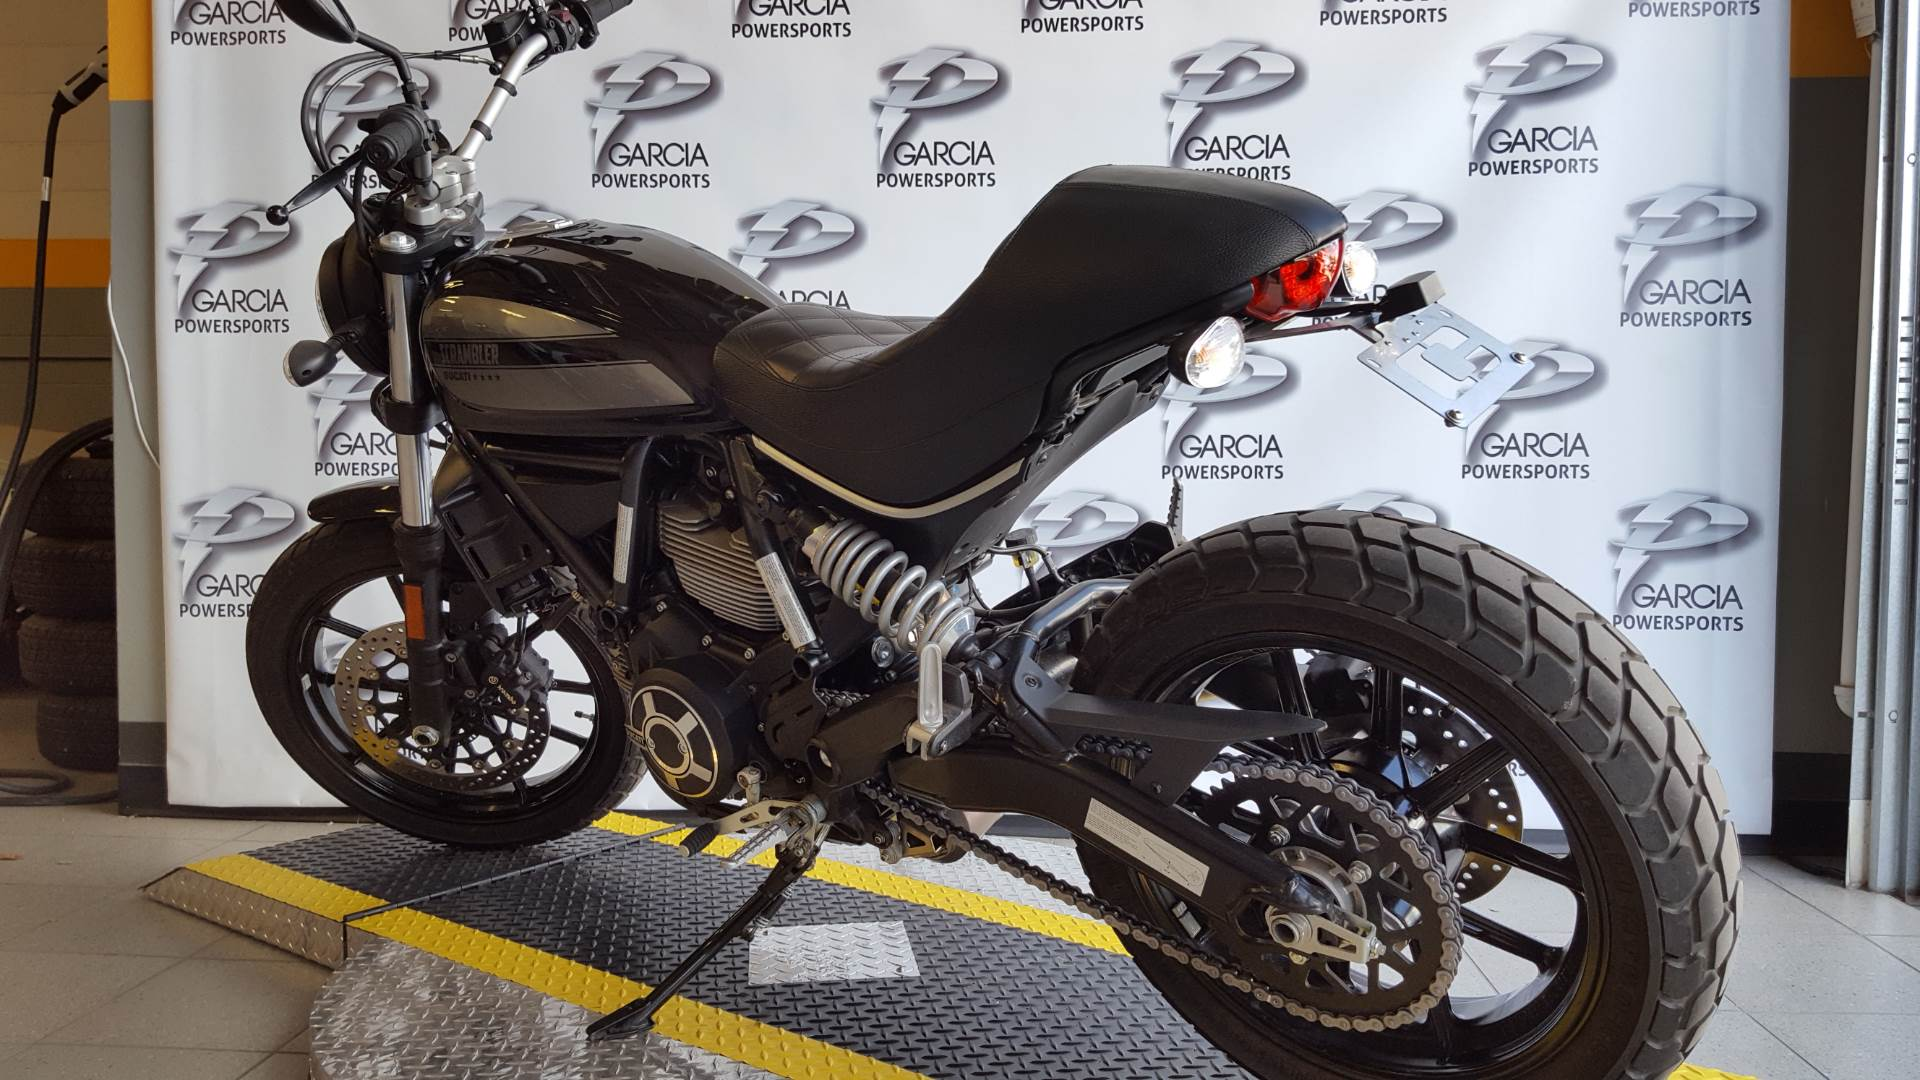 2016 Ducati Scrambler 62 in Albuquerque, New Mexico